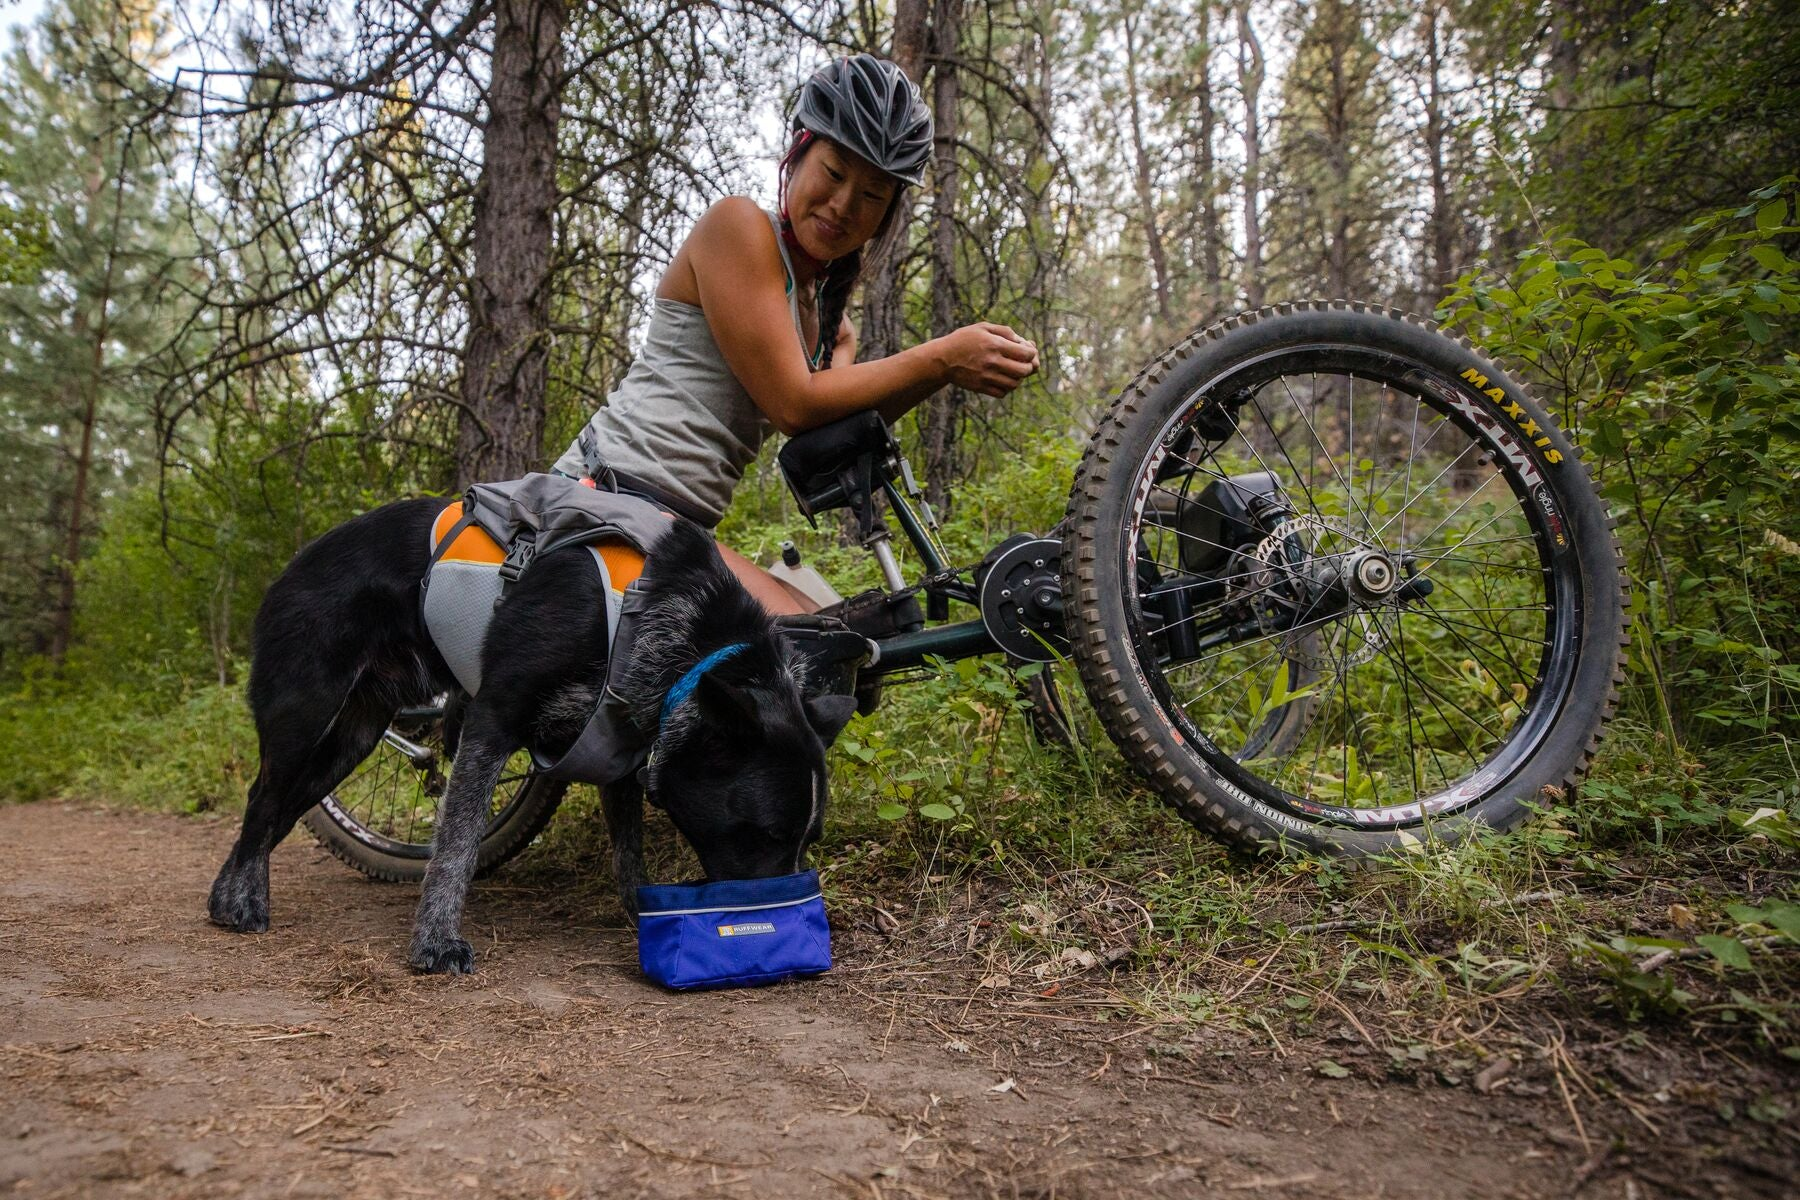 Adaptive athlete on a off road handcycle on trail while dog Bernie drinks out of quencher dog bowl at her side.